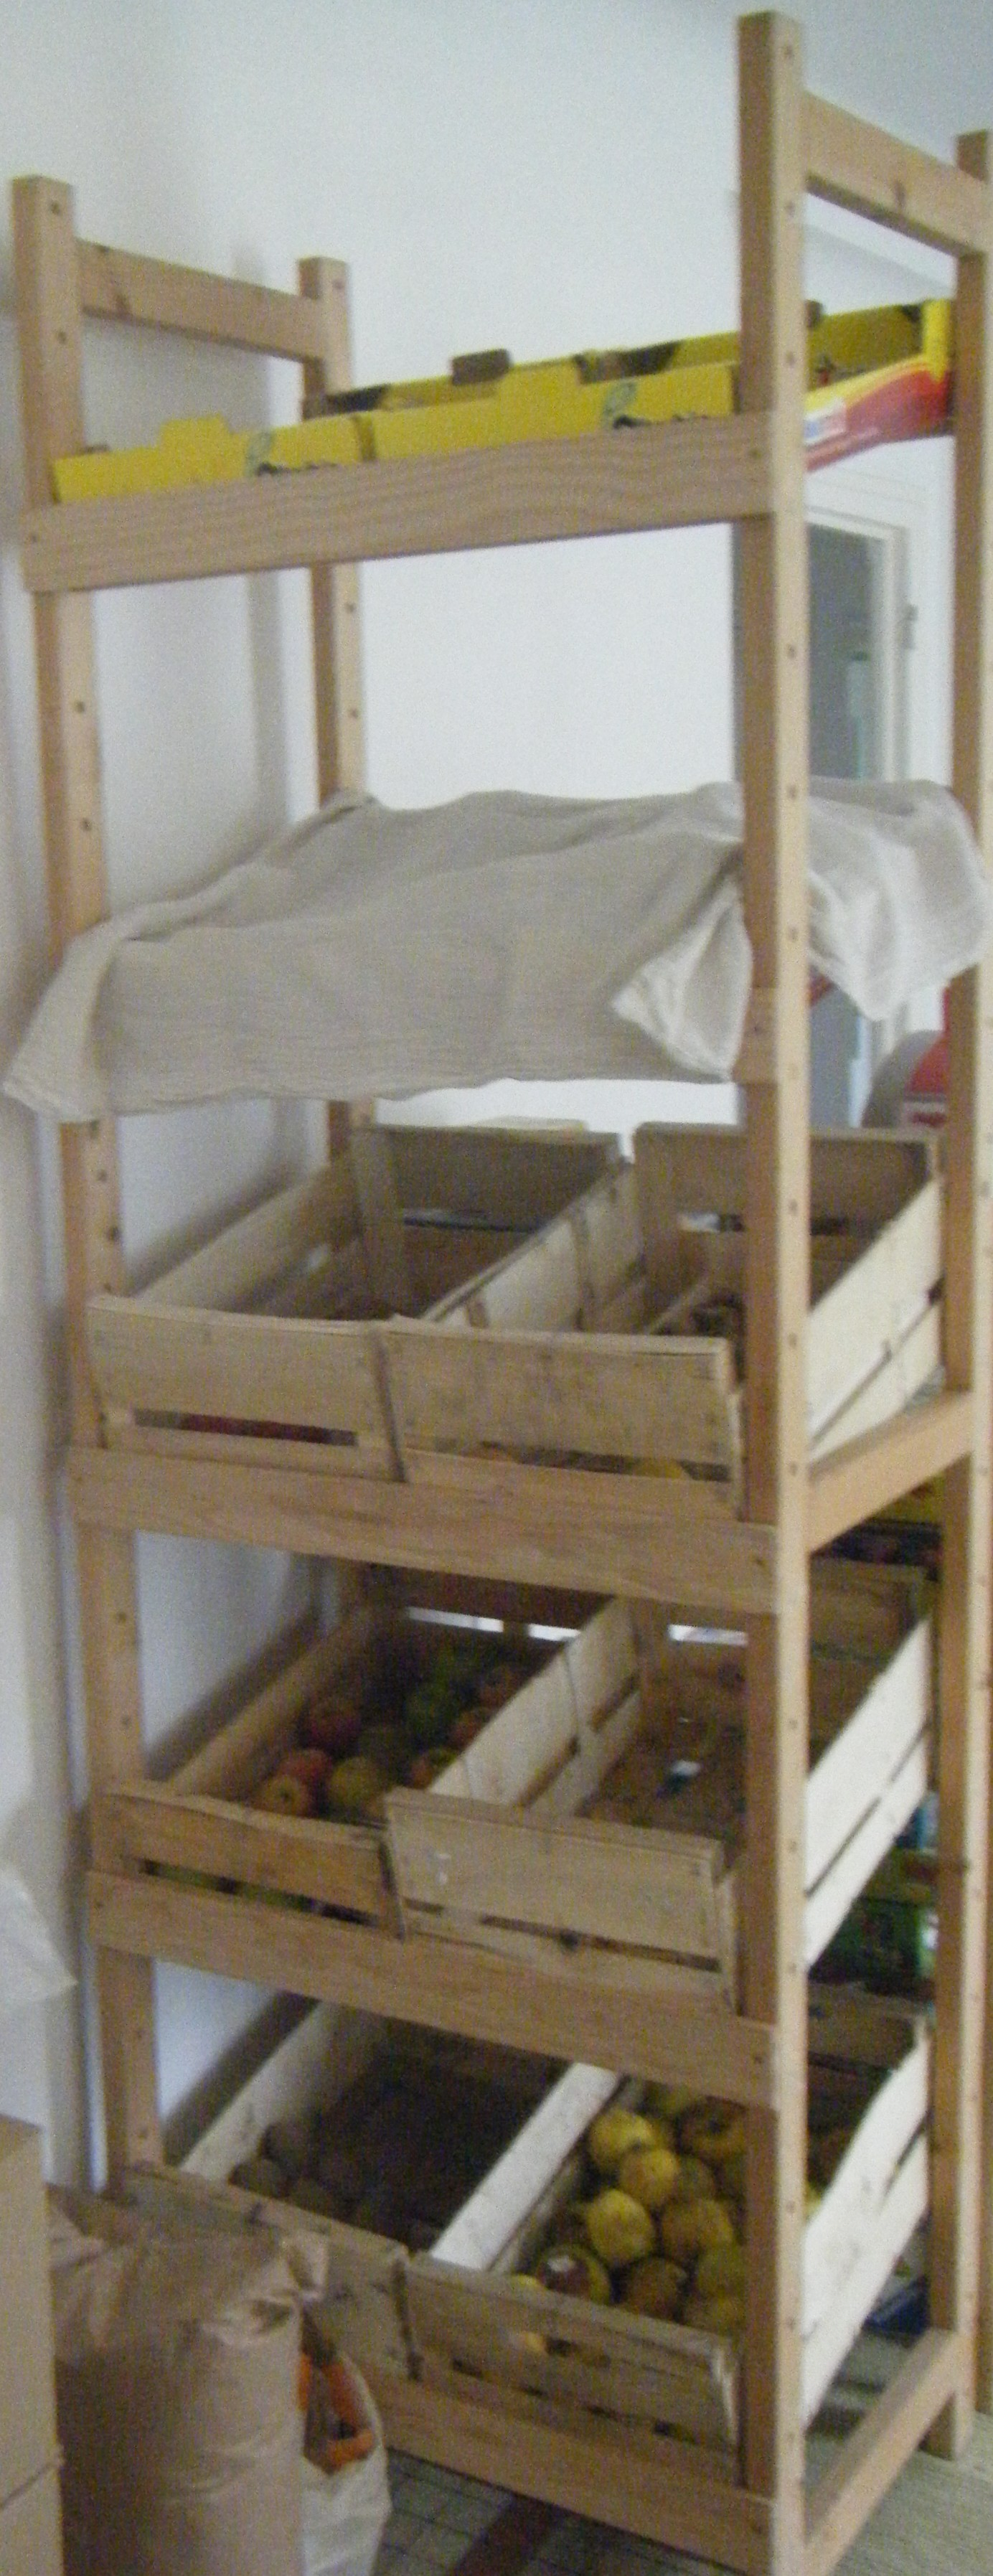 etag re fruits l gumes all gorie de la grenouille. Black Bedroom Furniture Sets. Home Design Ideas